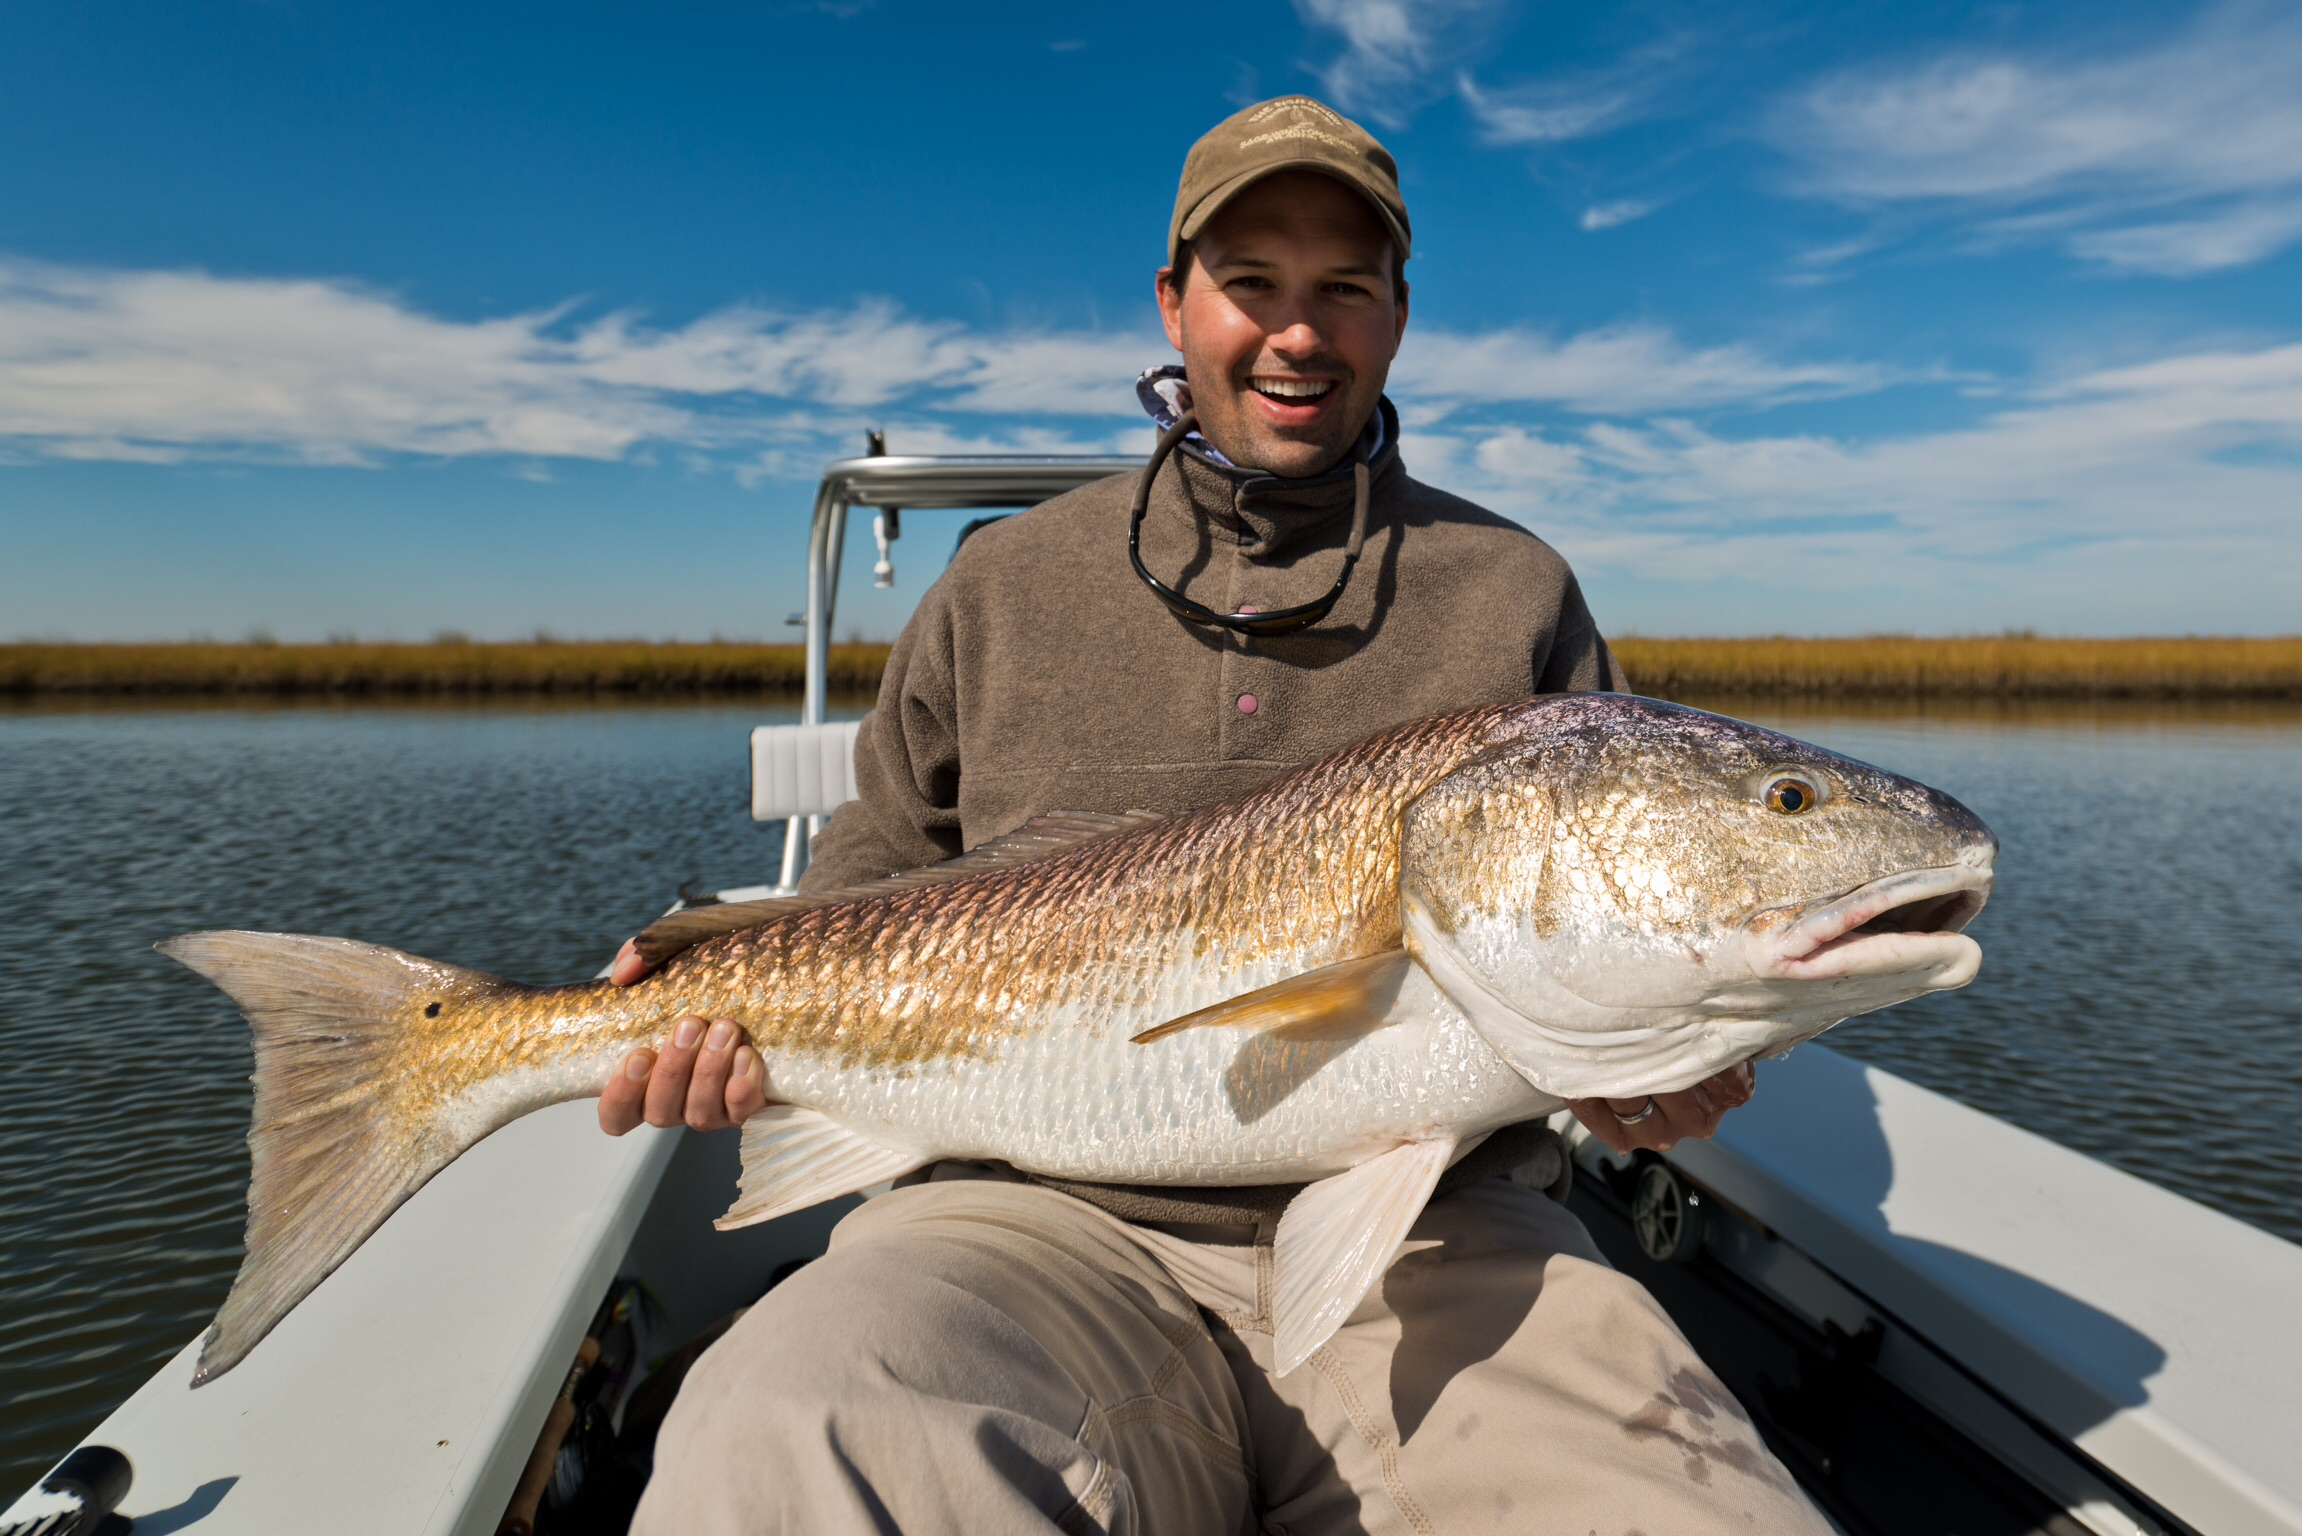 fly-fishing-redfish-new-orleans-louisiana-marsh-17